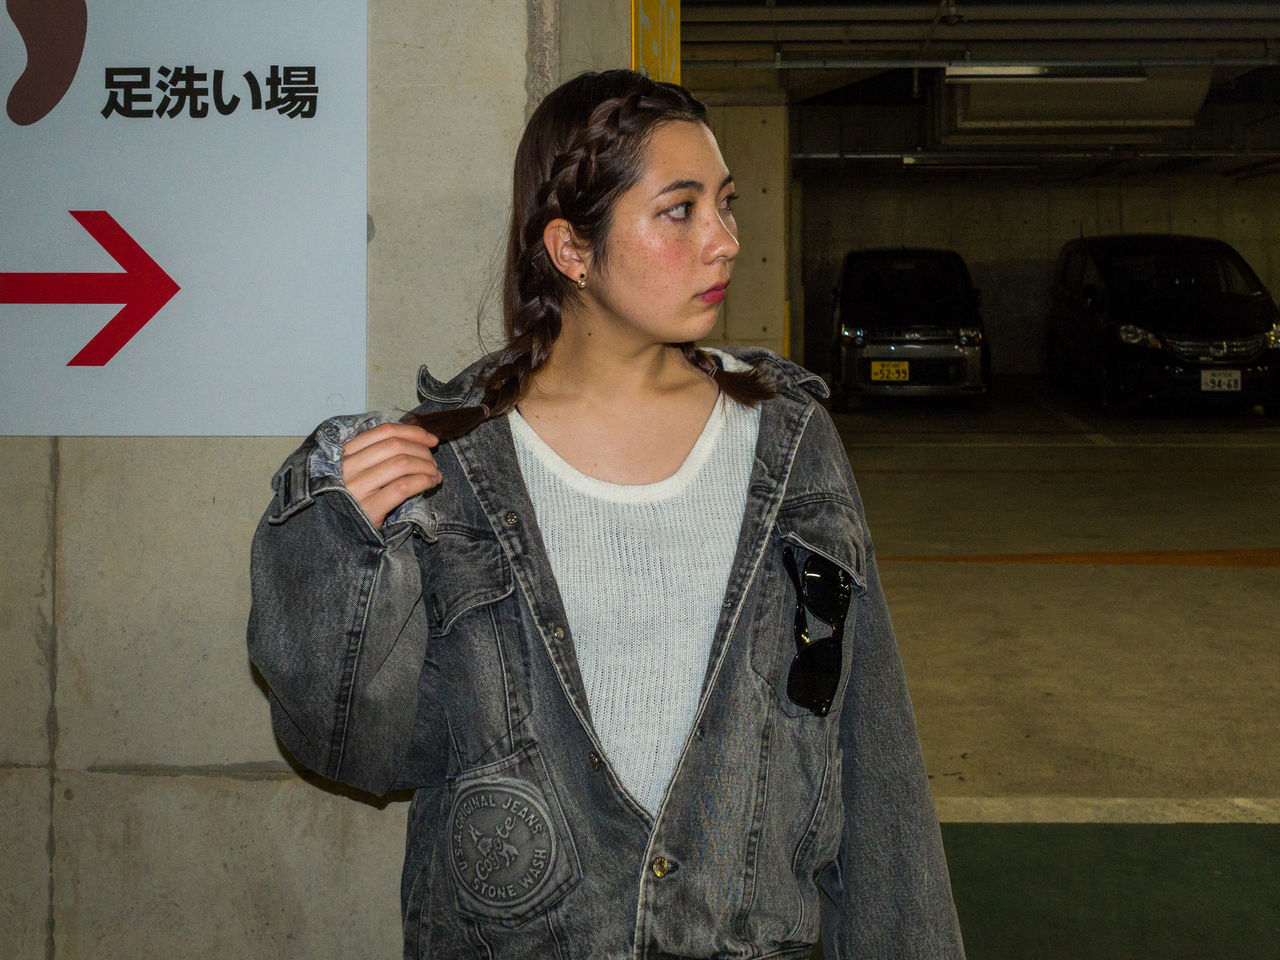 posing in a parking Black Hair Girl Casual Clothing Eurasian Grey In A Parking Lot Japanese Characters Japanese Girl One Person Panel People Real People Standing Underground Parking Young Adult Young Woman